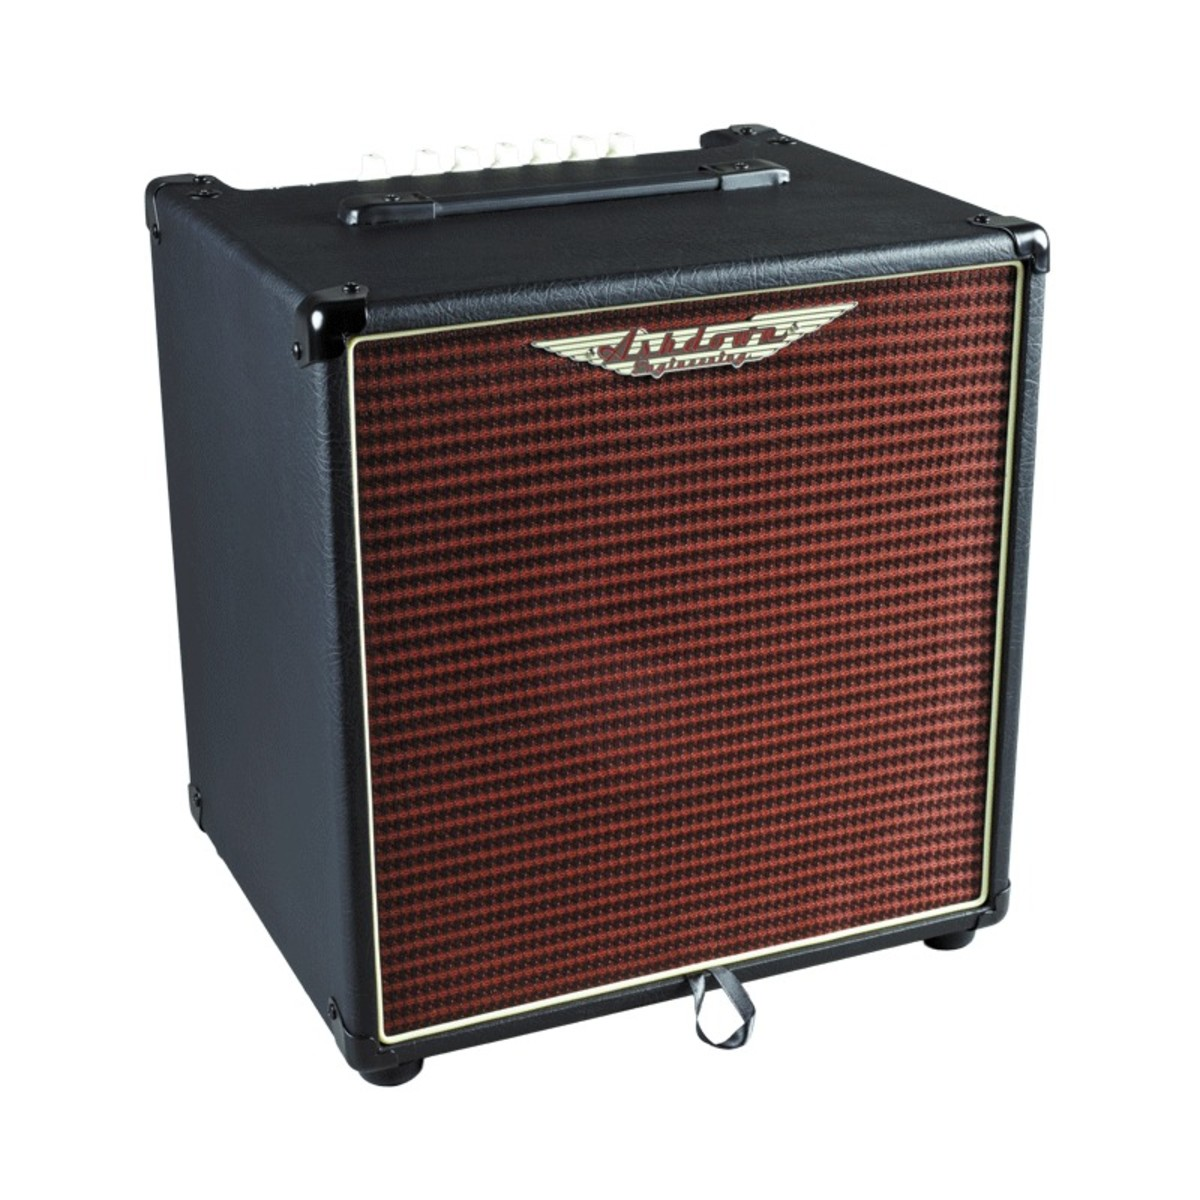 ashdown aaa 60 evo 10t lightweight 60w 1 x 10 bass amp combo at gear4music. Black Bedroom Furniture Sets. Home Design Ideas